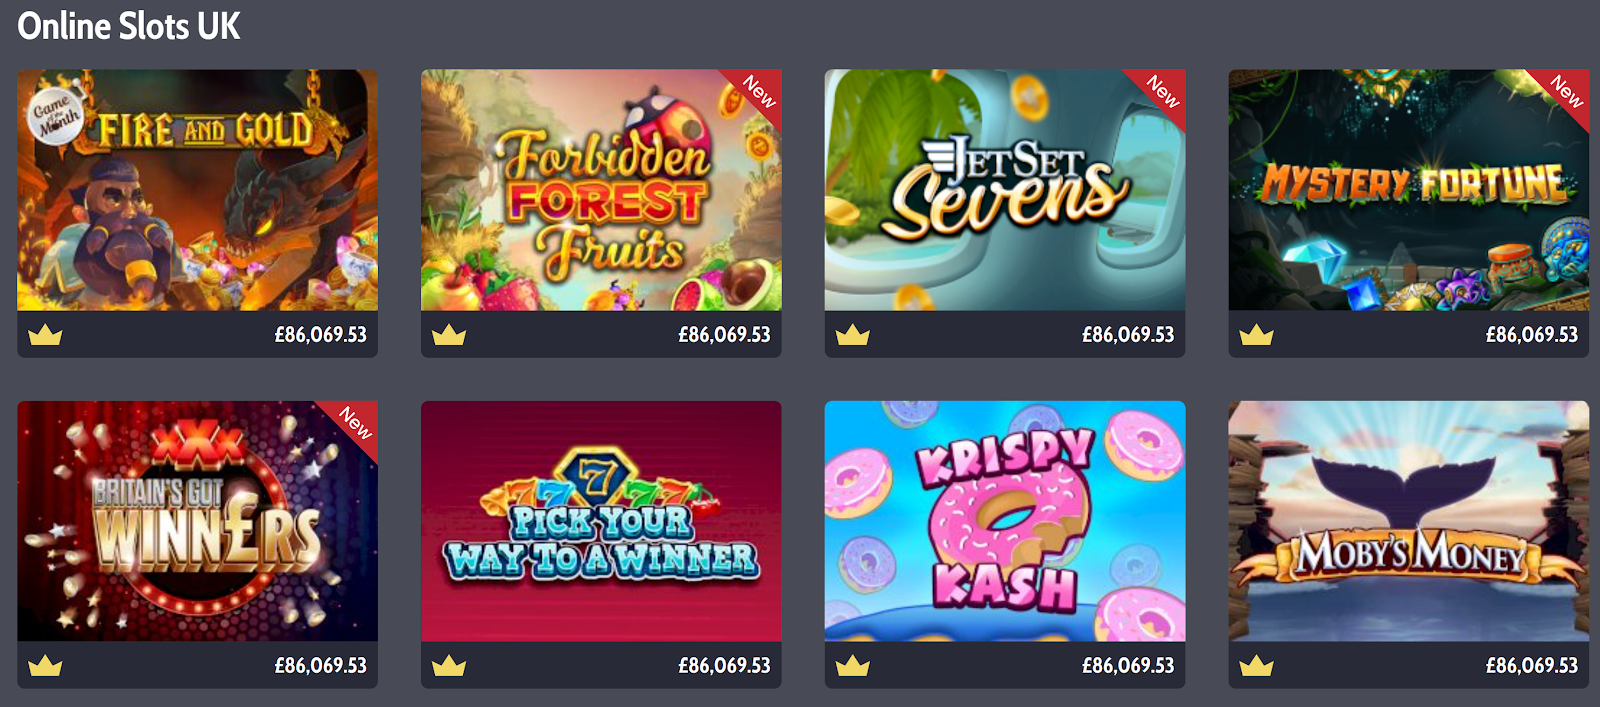 Cashmo Casino is one of the best 200% deposit bonus casinos